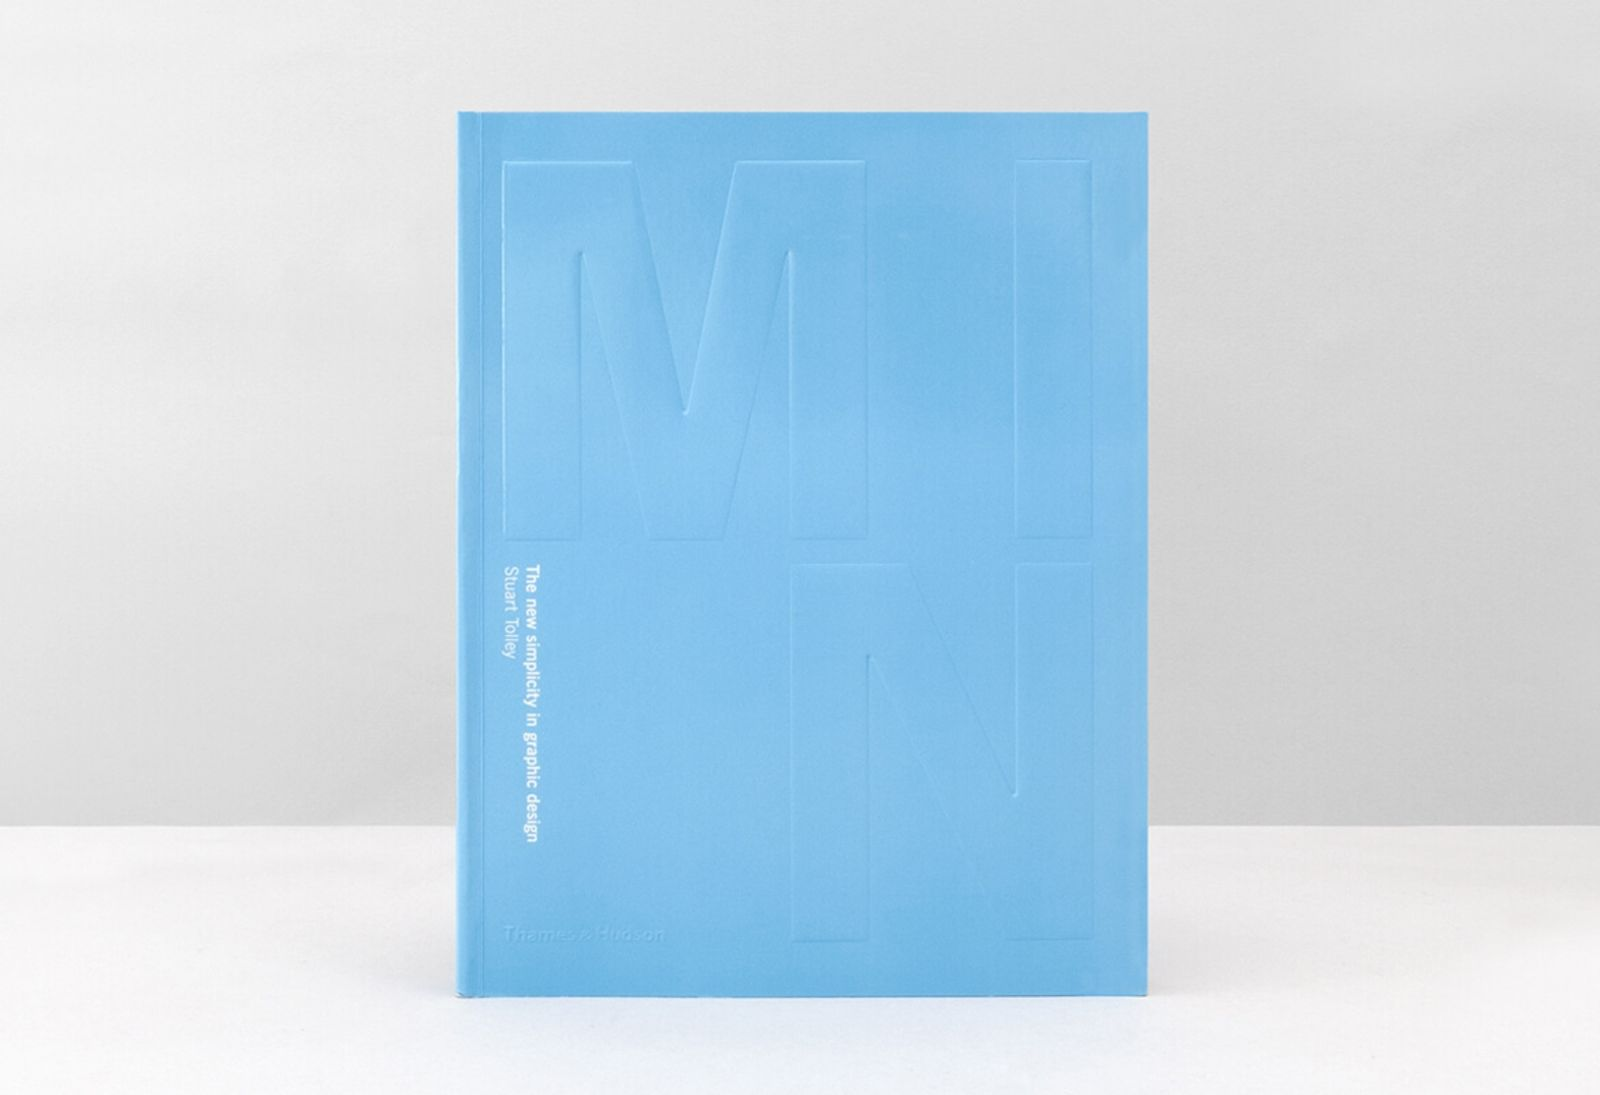 A survey of beautifully minimal branding, packaging and more in book form